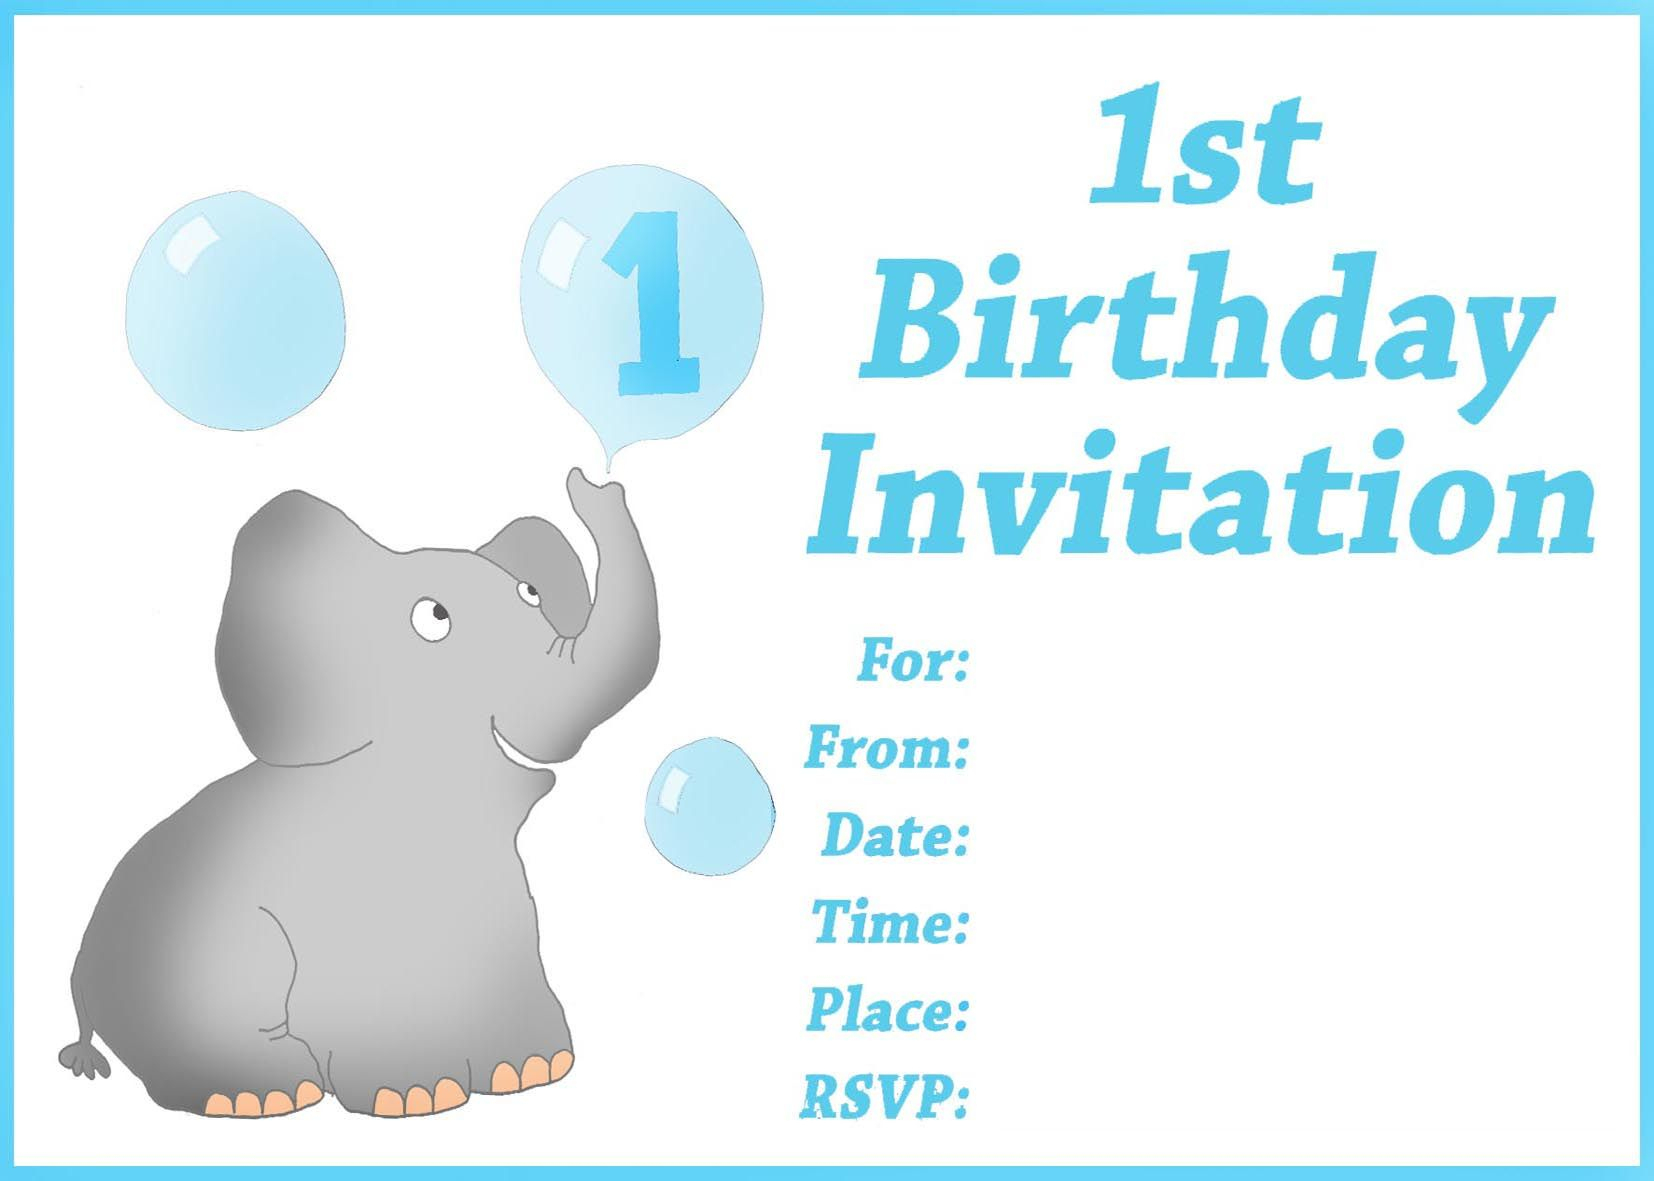 Free Printable First Birthday Invitations For Boy For Donny - Customized Birthday Cards Free Printable